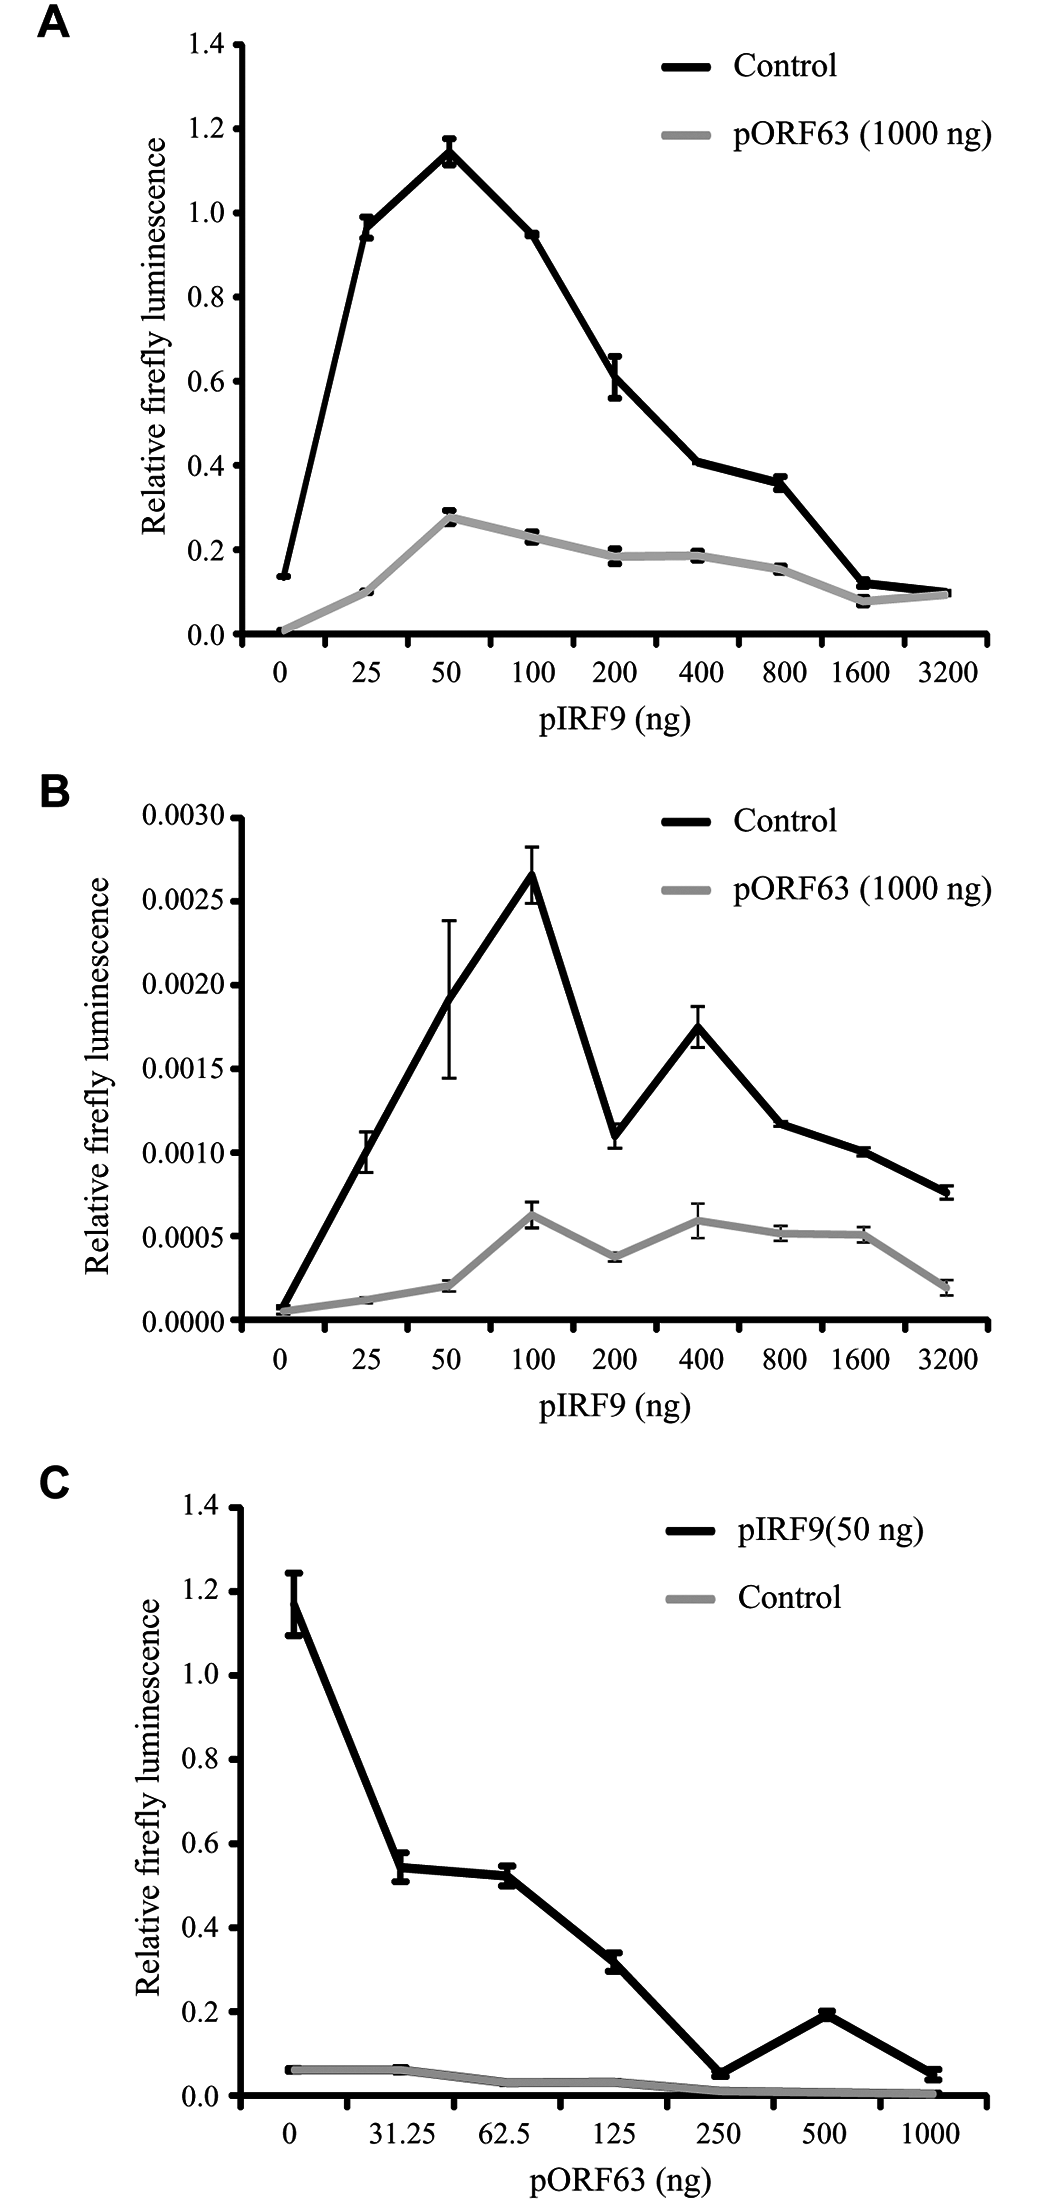 ORF63 inhibits IRF9-enhanced JAK-STAT signaling in HEK 293T cells.